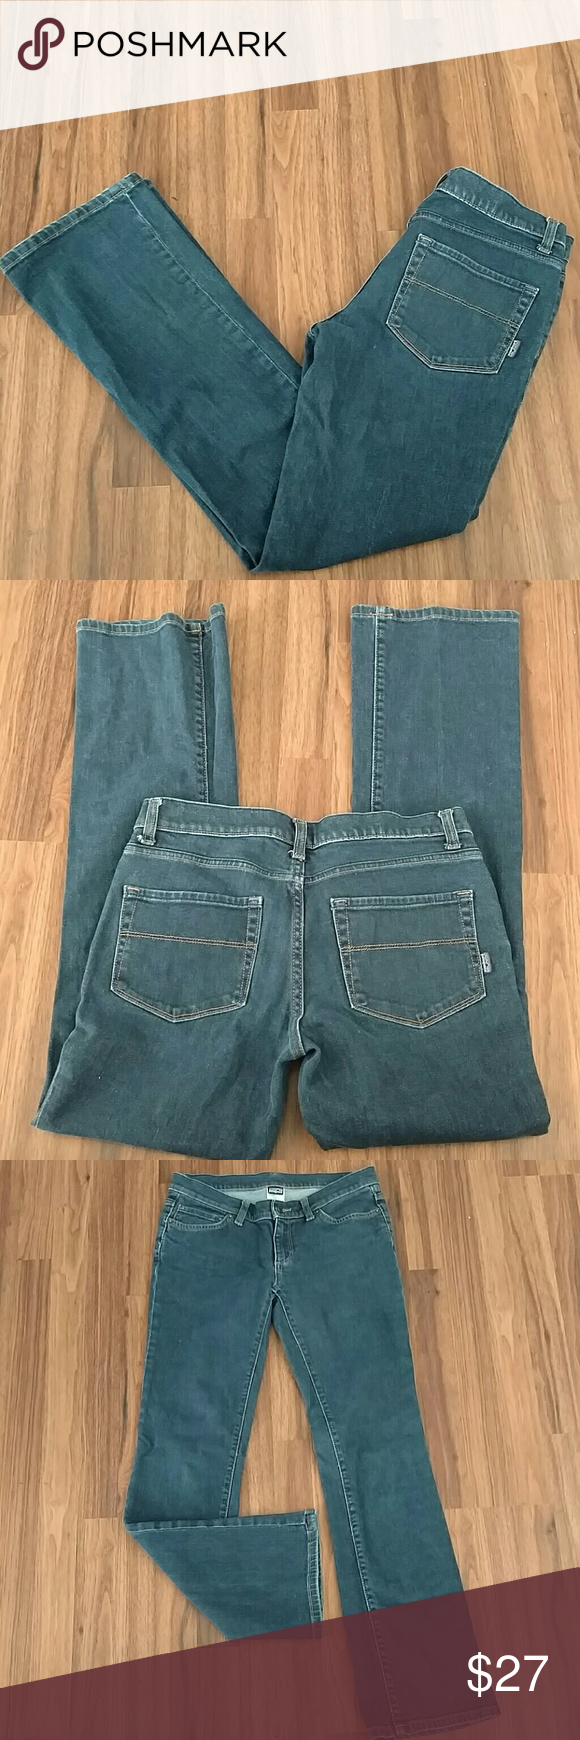 """Patagonia Organic Cotton Stretch Jeans Sz 28 Patagonia Organic Cotton Stretch Jeans Sz 28. Medium wash. Inseam is 31"""". Preowned good condition. Patagonia Jeans"""